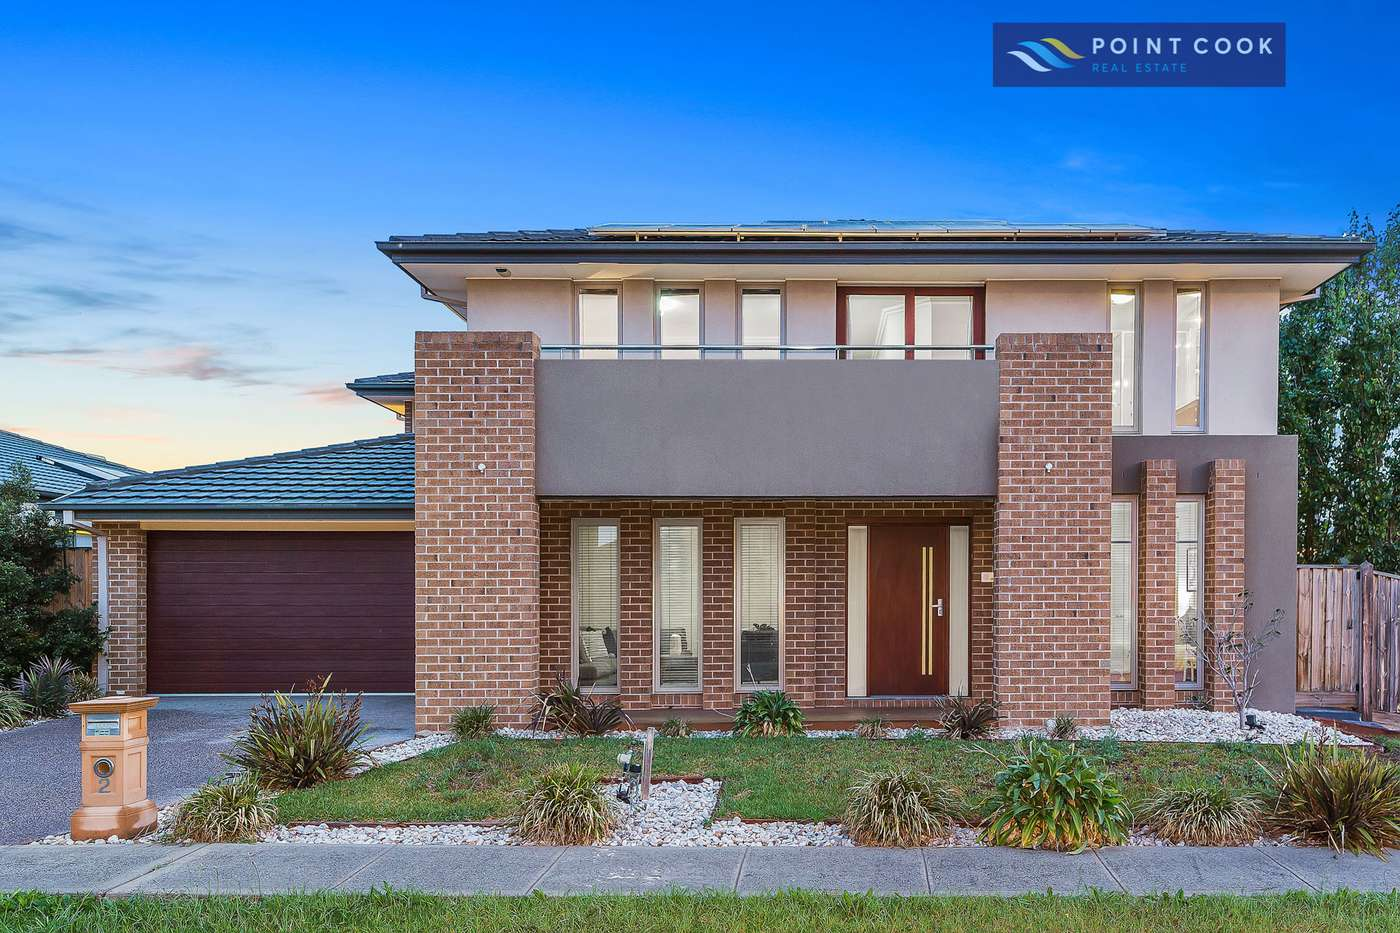 Main view of Homely house listing, 2 Manna Way, Point Cook, VIC 3030